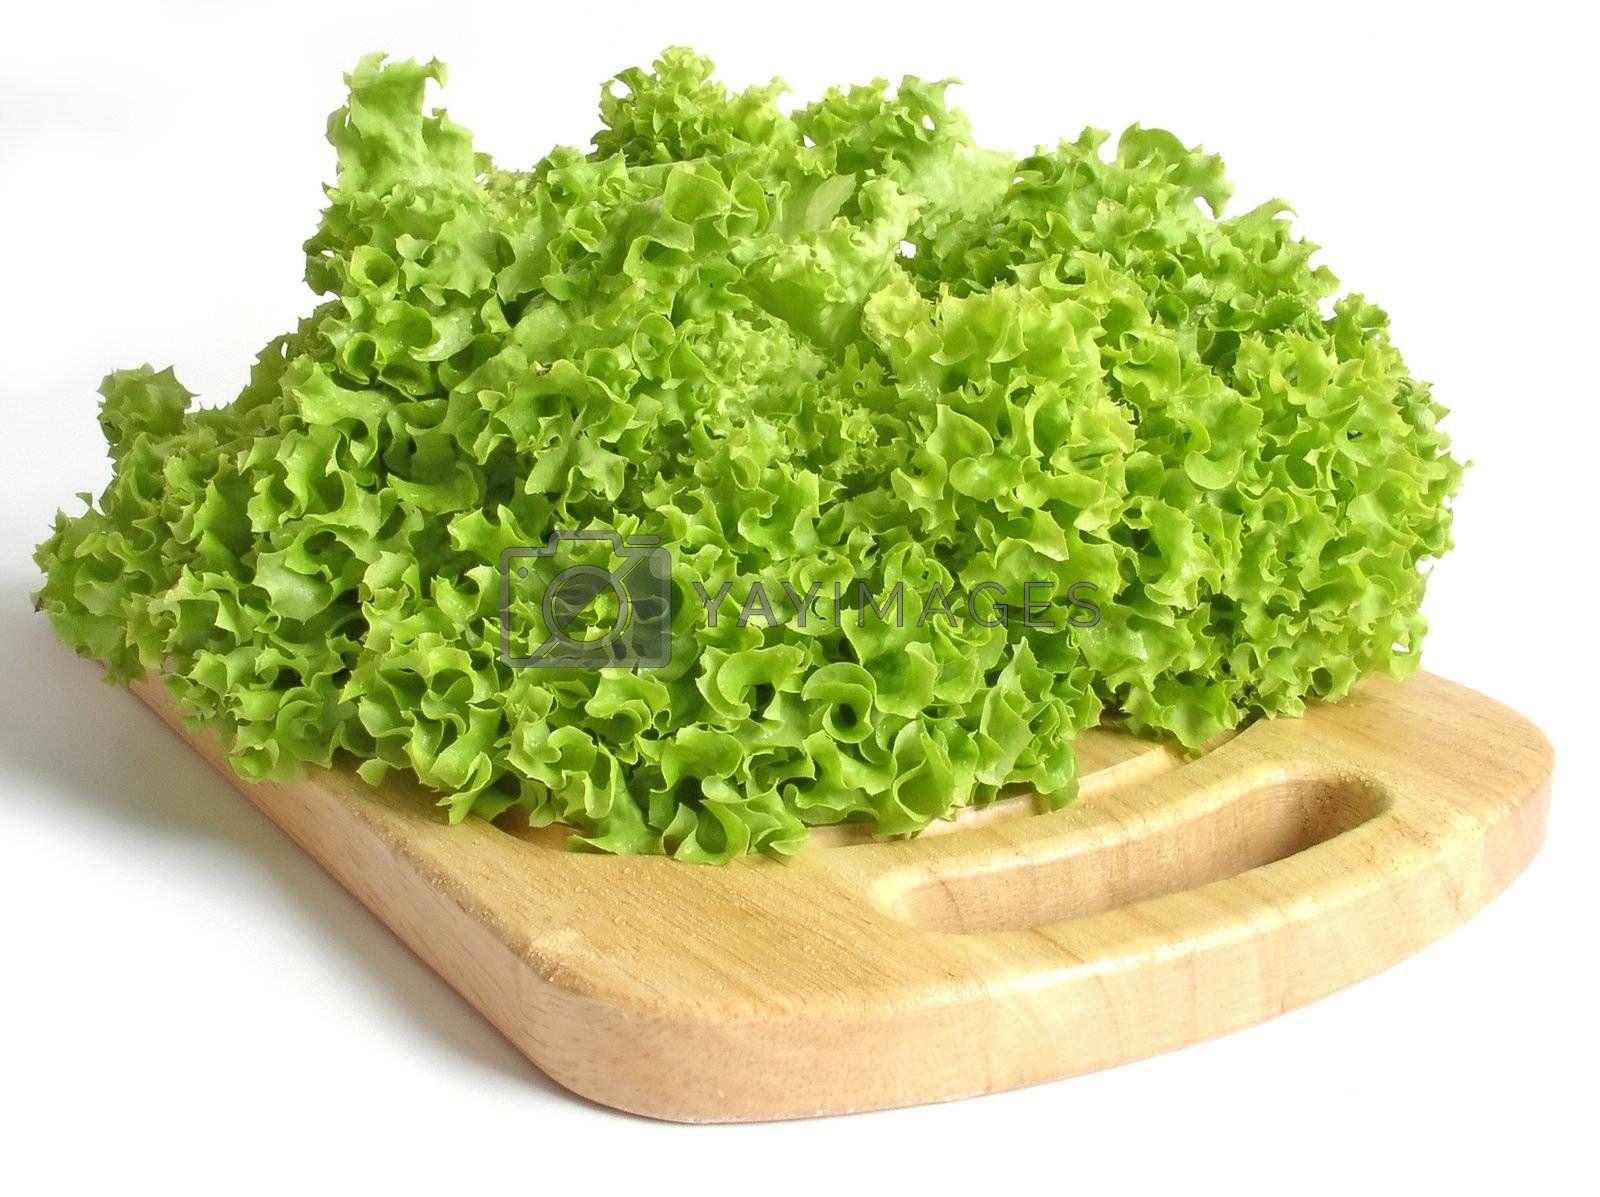 Royalty free image of lettuce by kapp